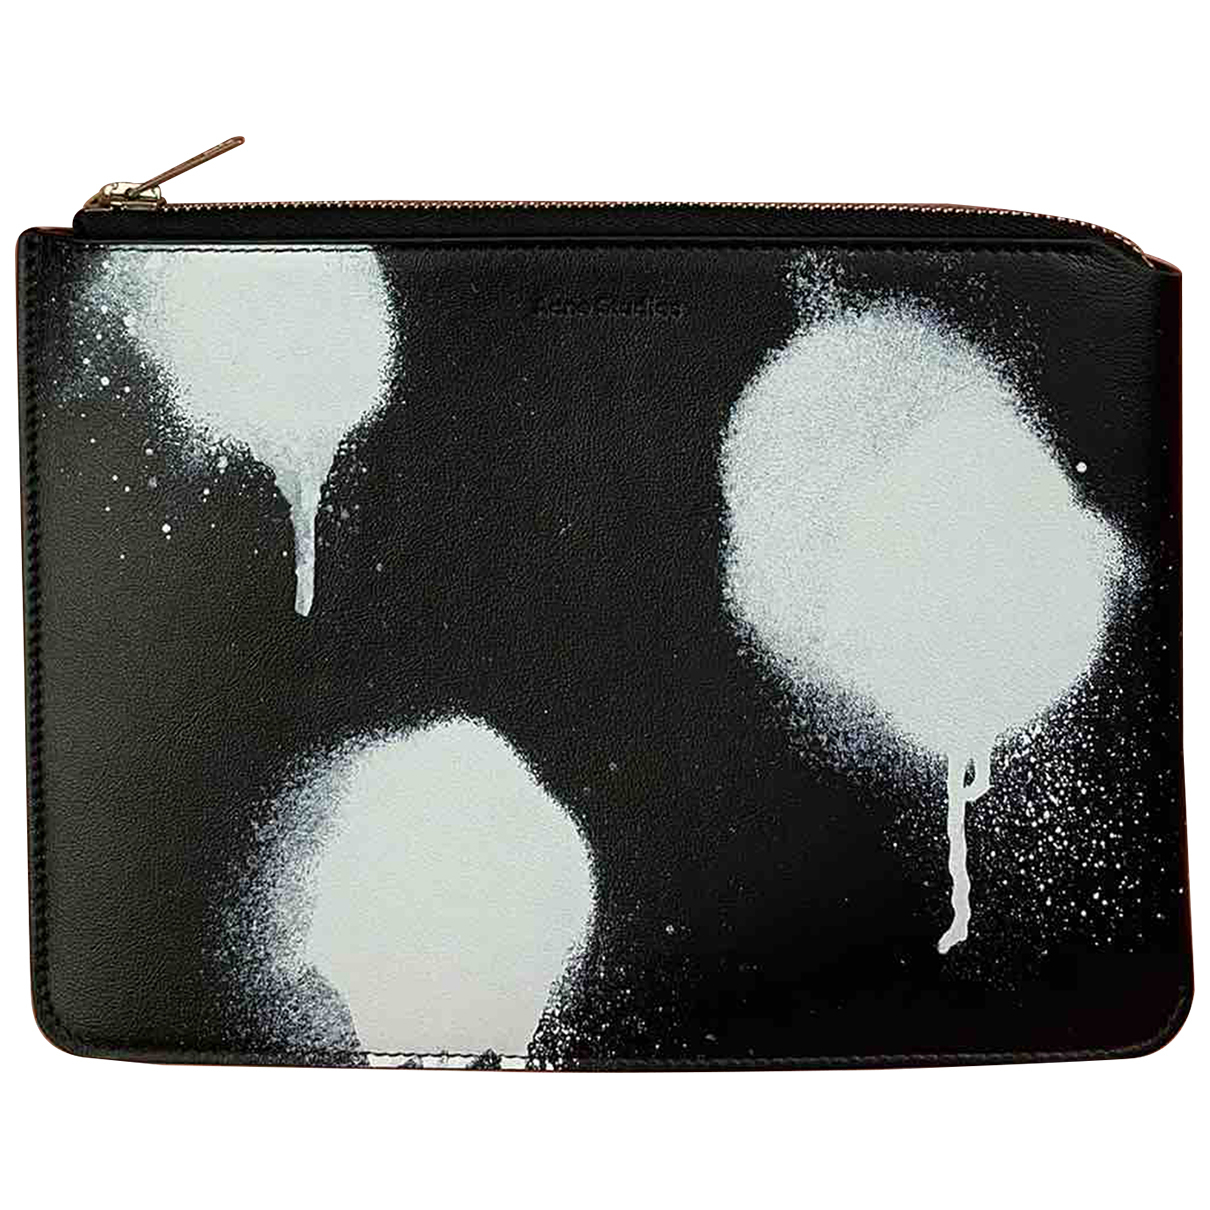 Acne Studios N Black Leather Purses, wallet & cases for Women N